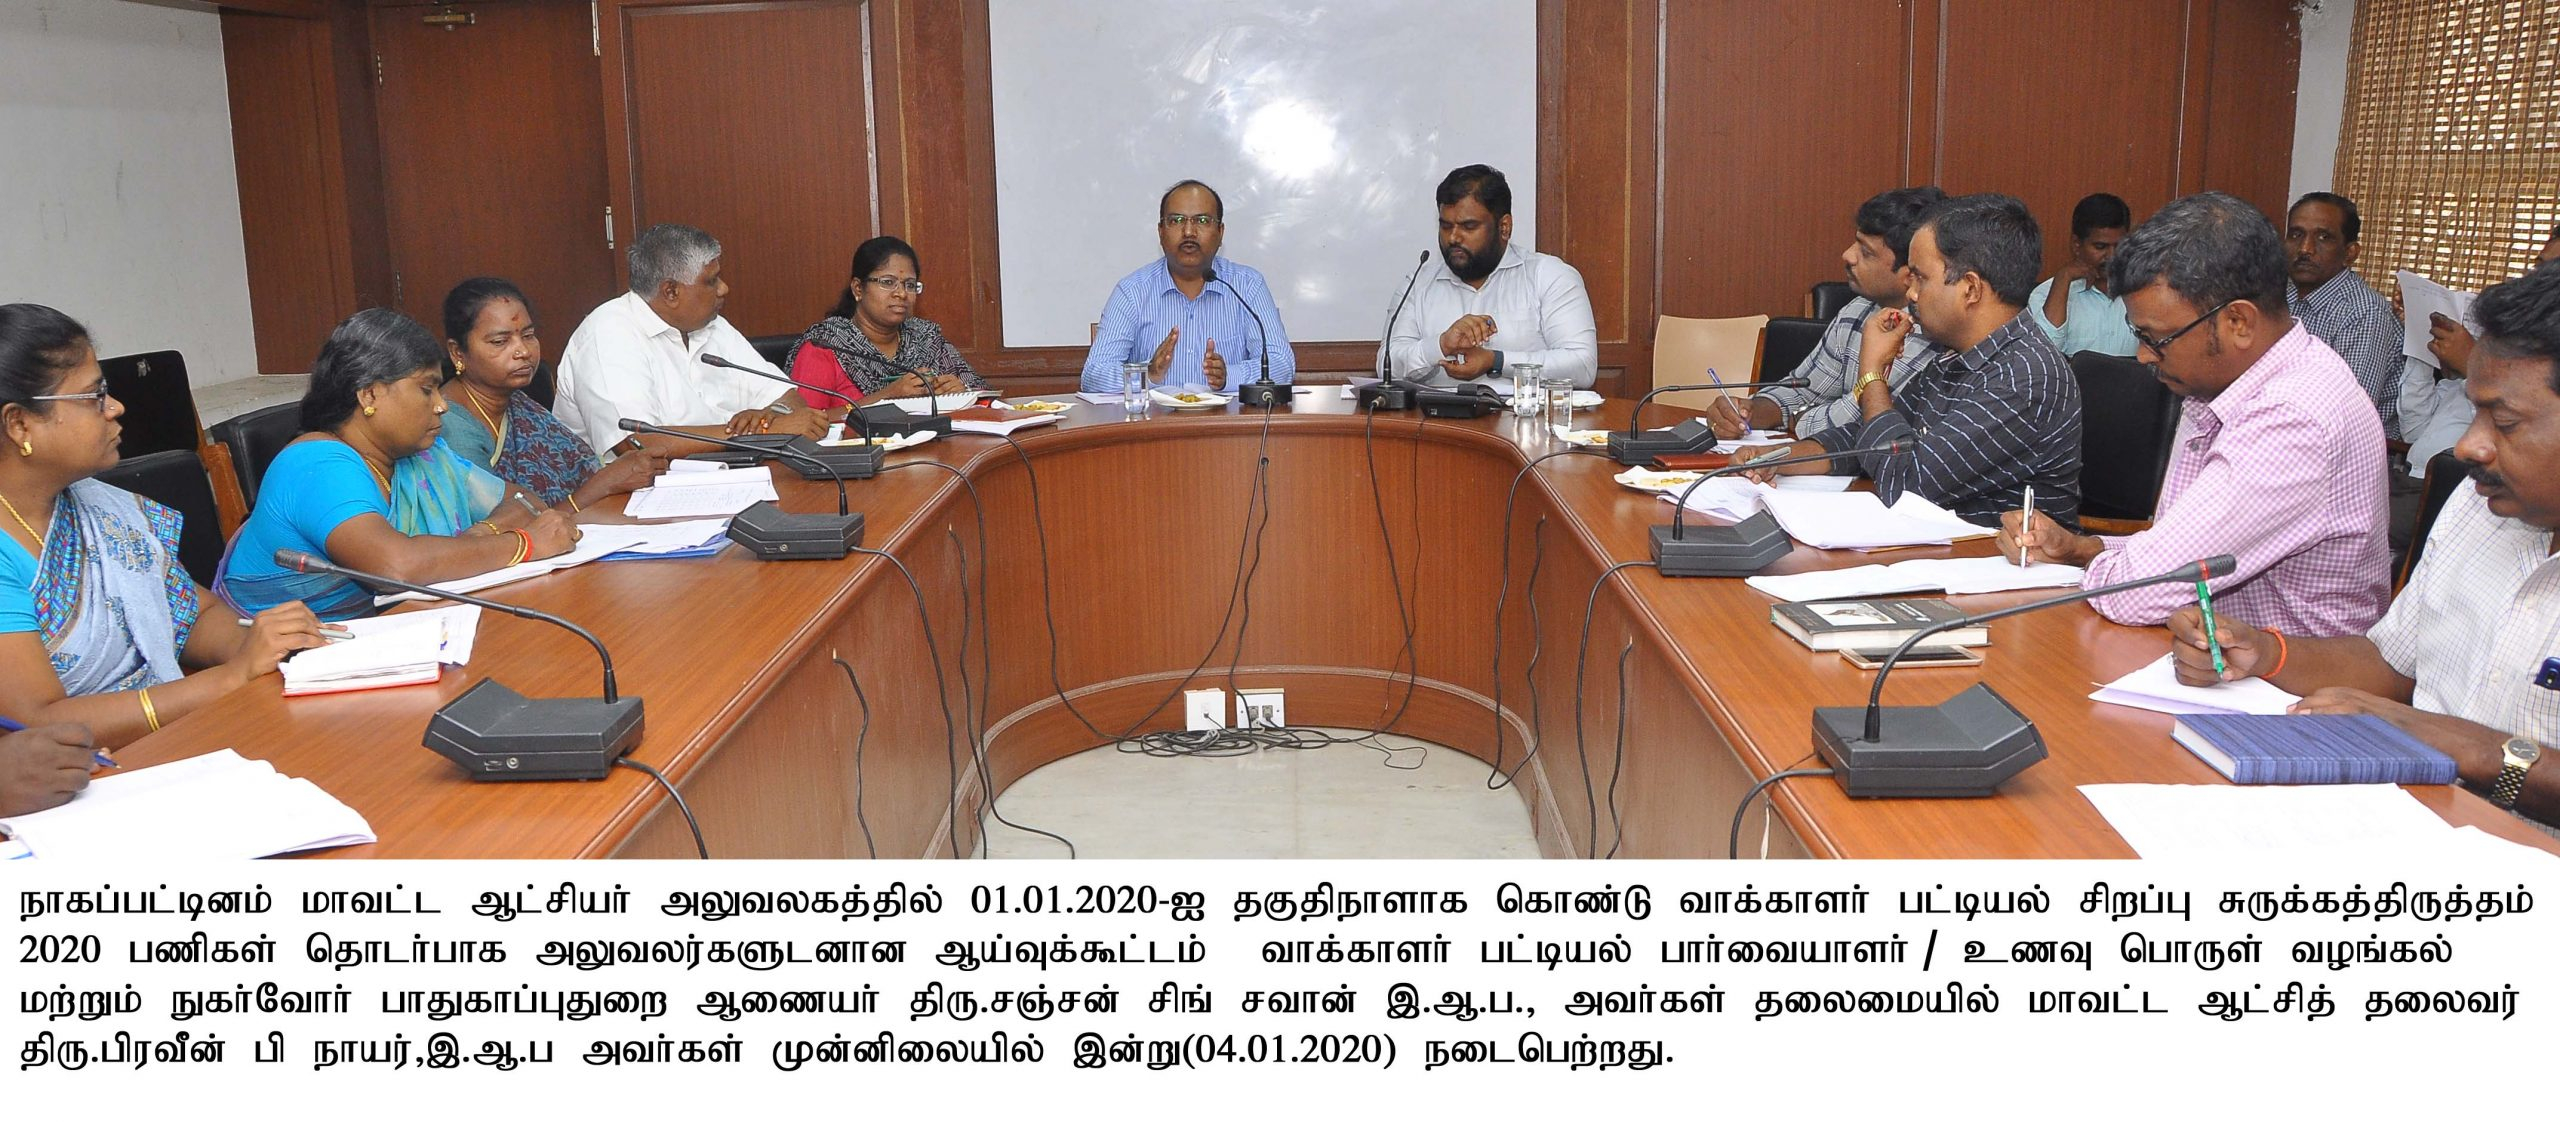 Review meeting held, headed by Roll Observer – 04.01.2020